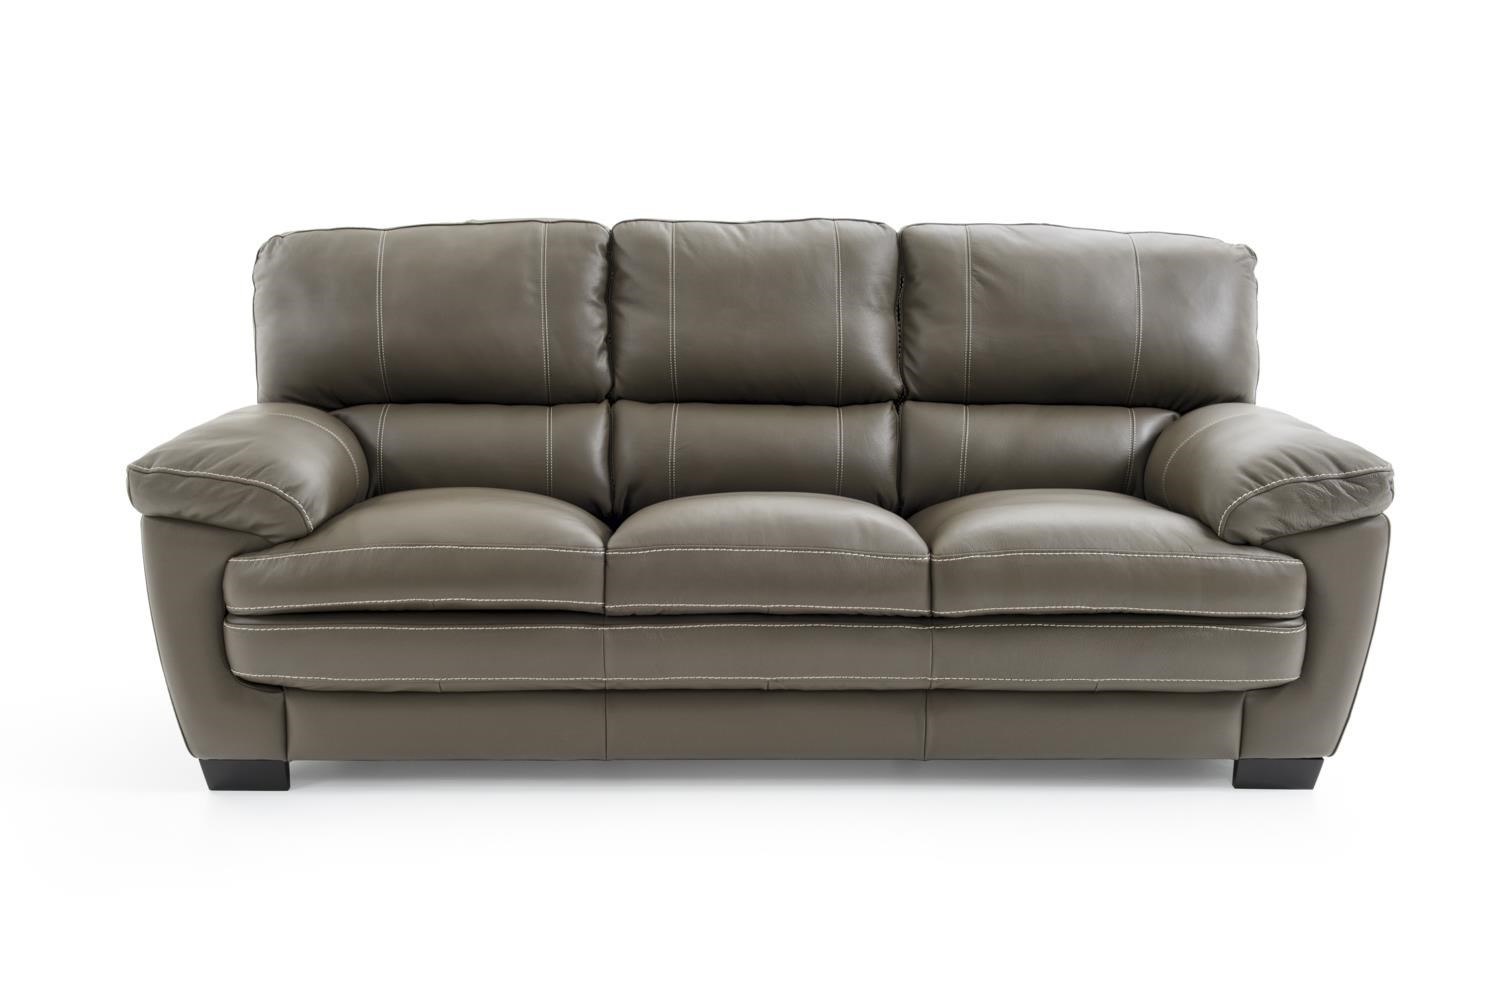 leather sofas tampa naples sofa modular sectional and thayer